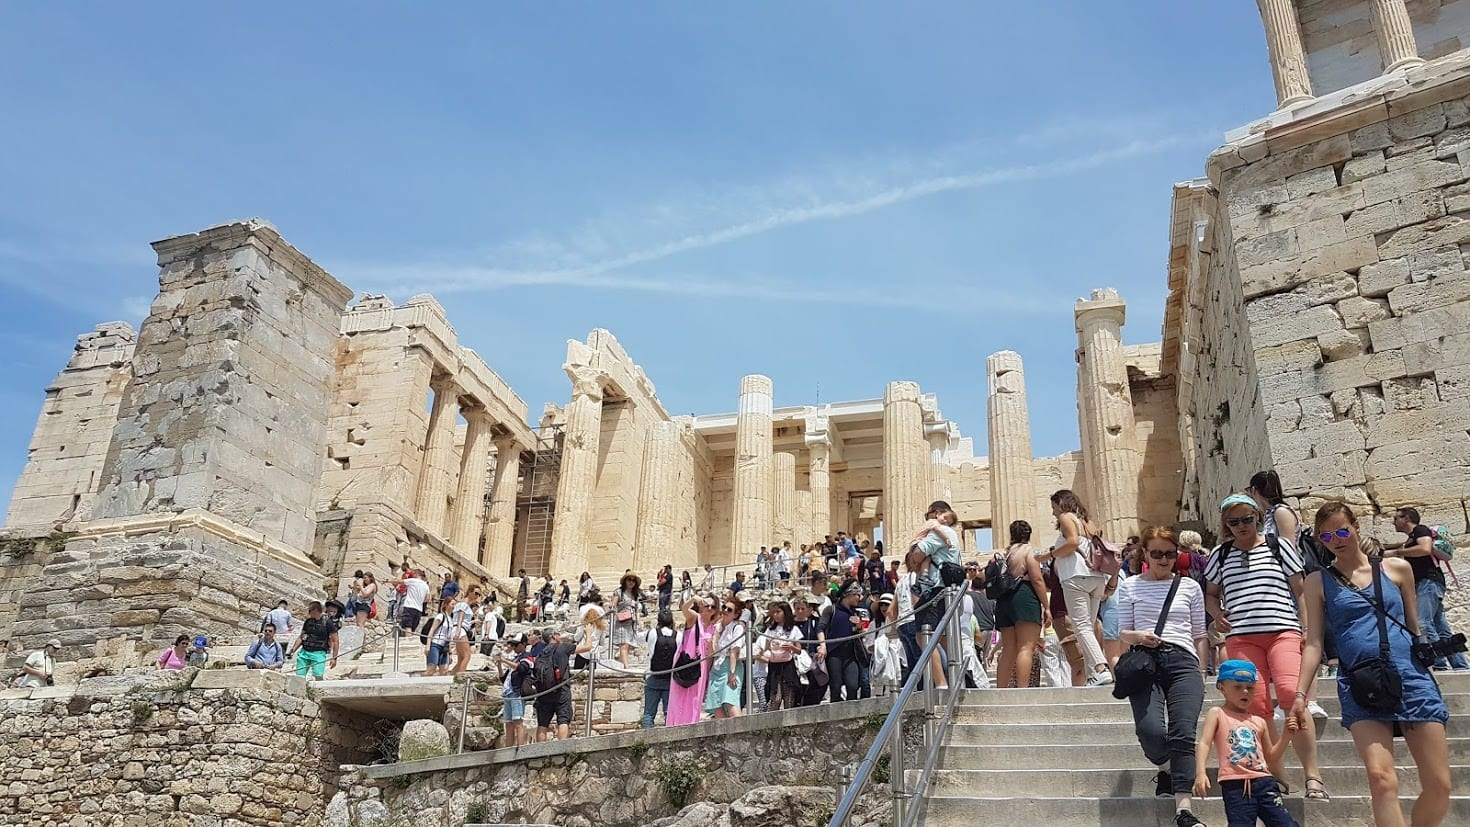 The Acropolis can get busy in the summer